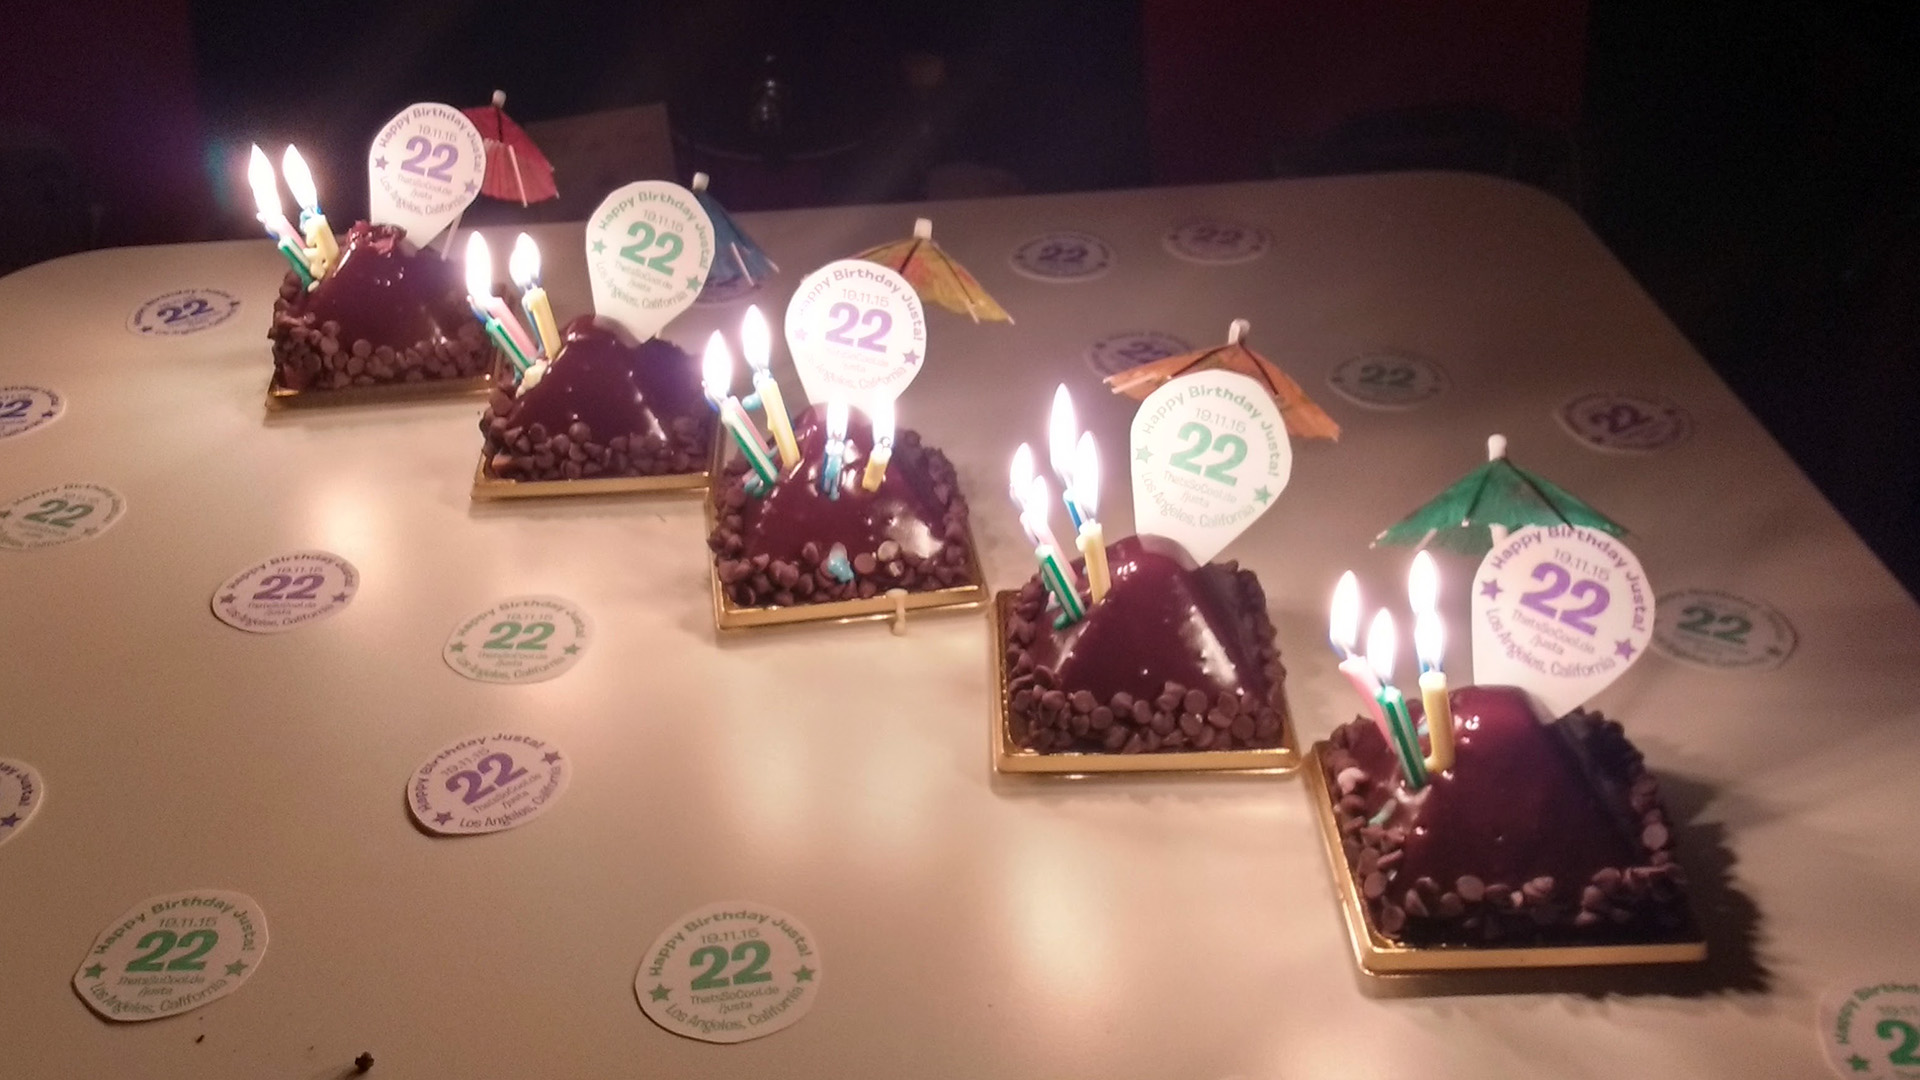 Chocolate Pyramids decorated with parasols, candles, and 22nd birthday tags